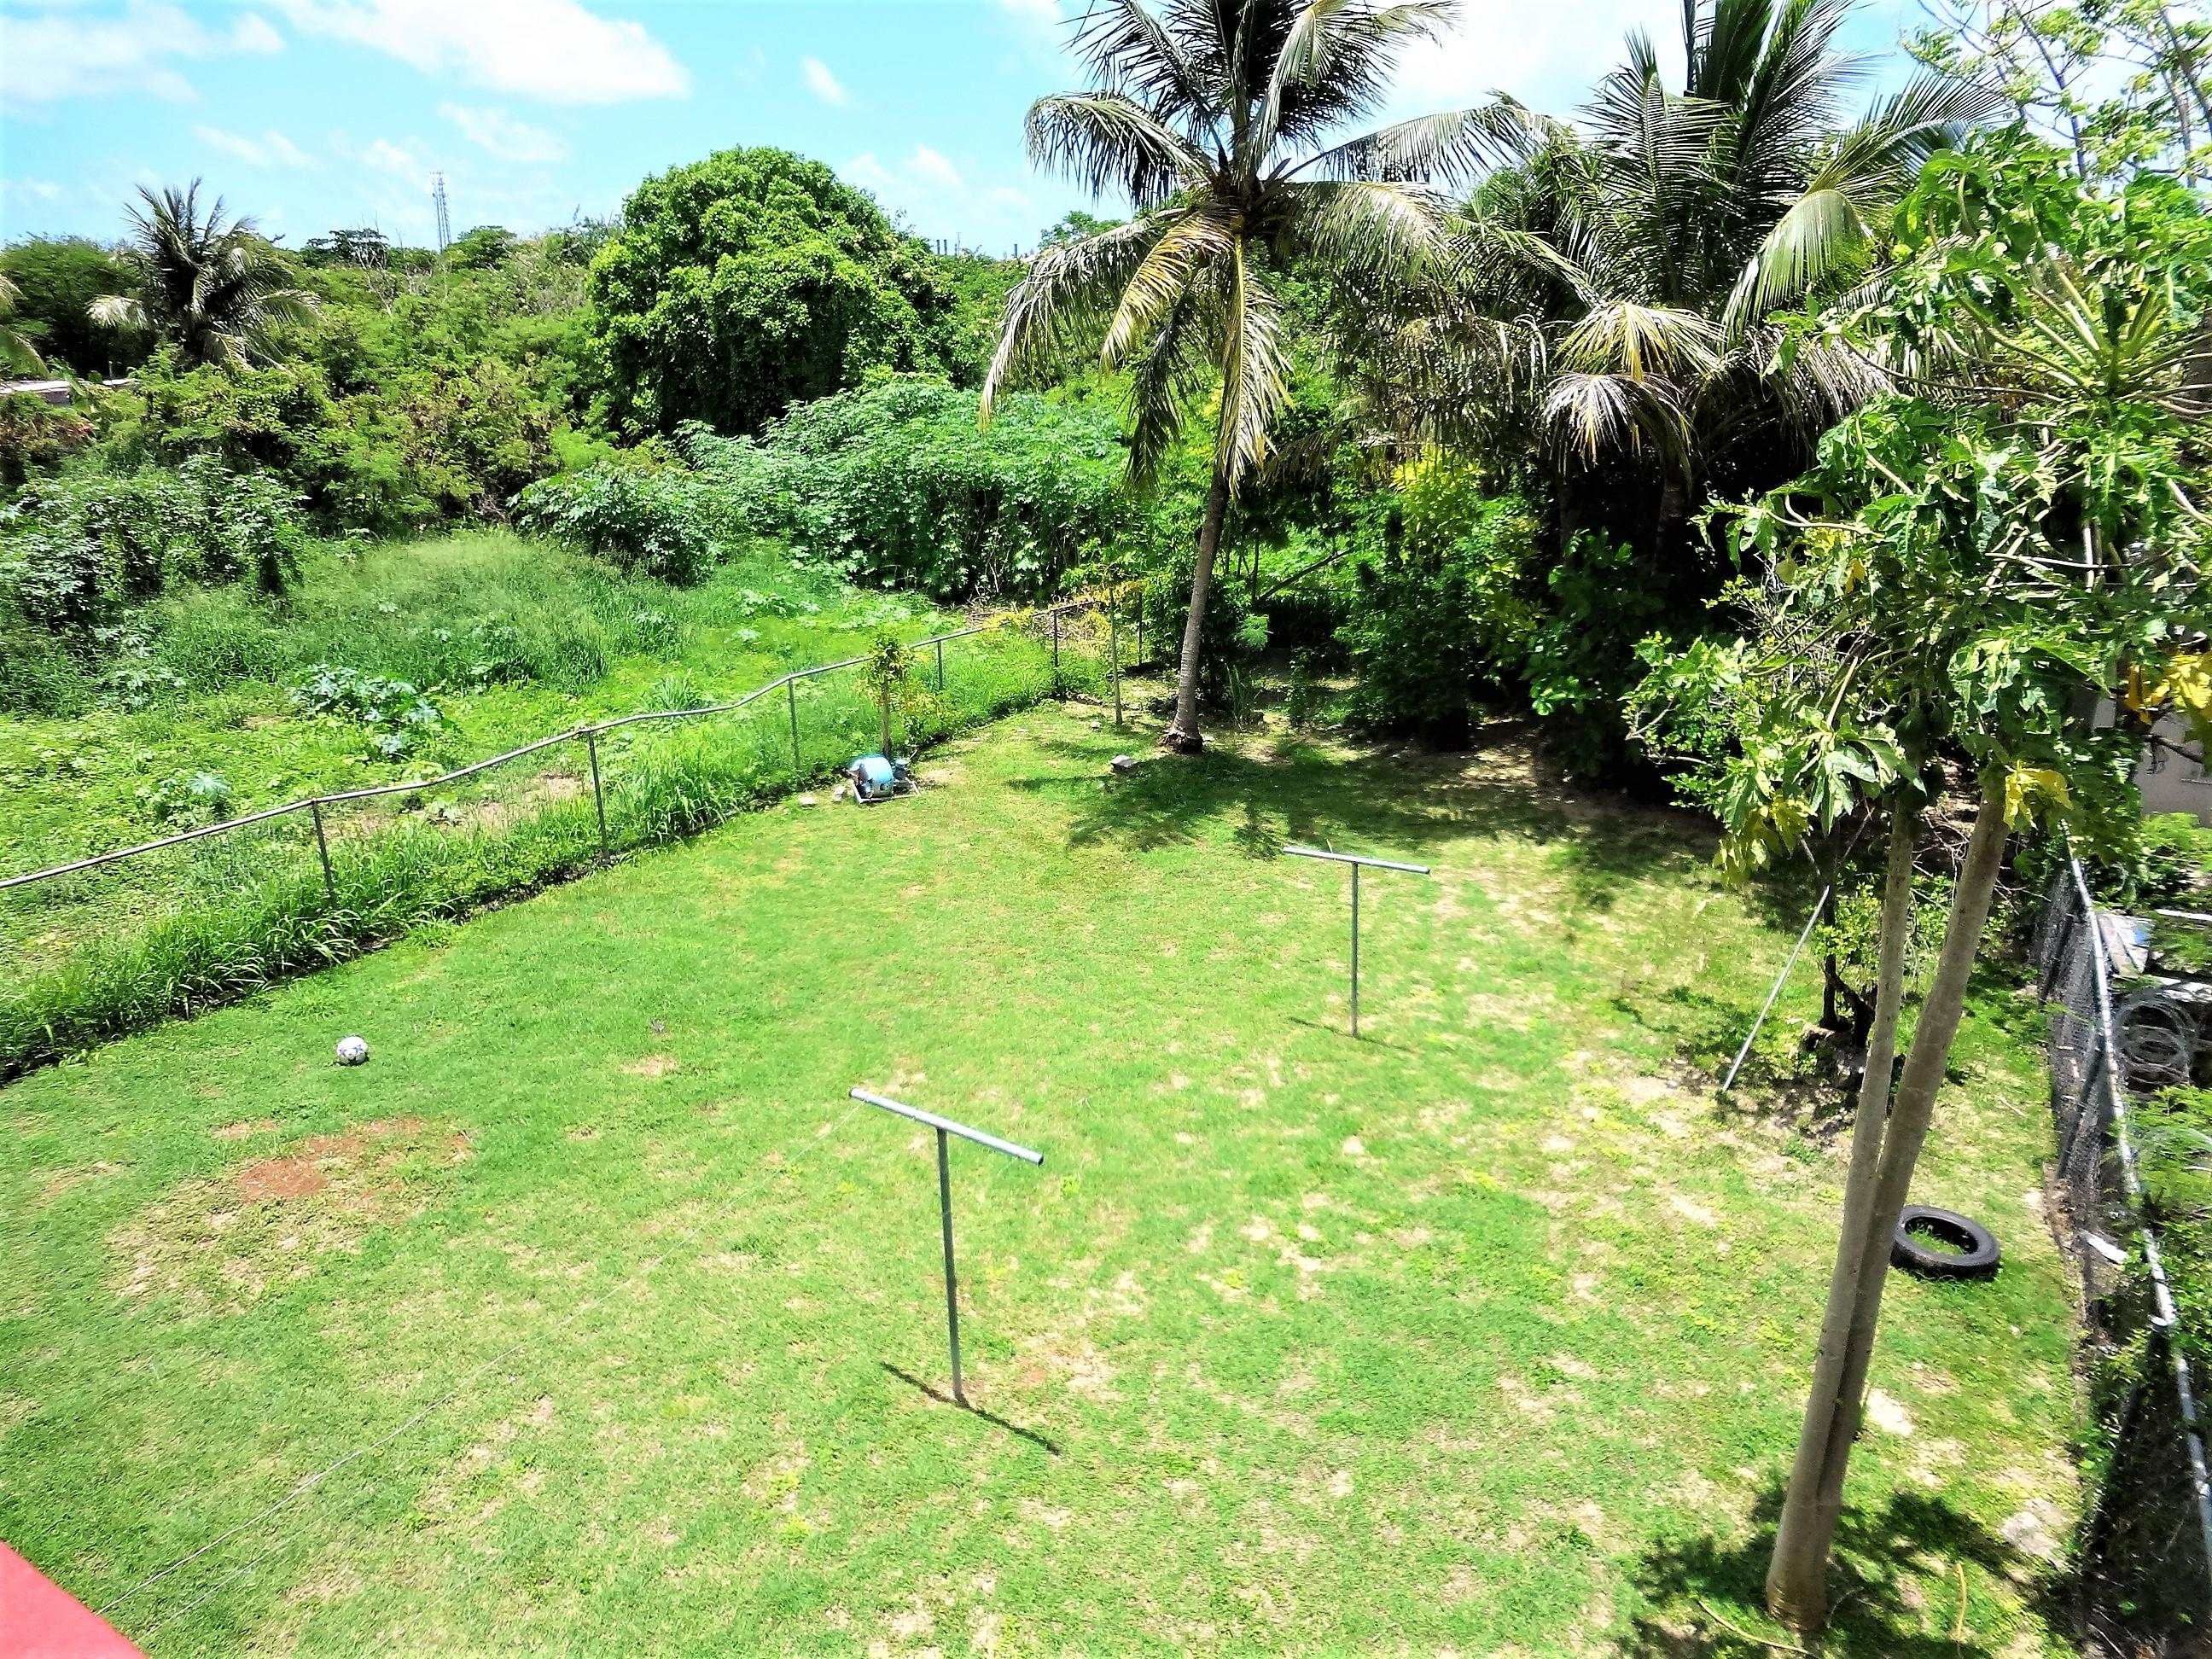 Fruit Trees in Backyard